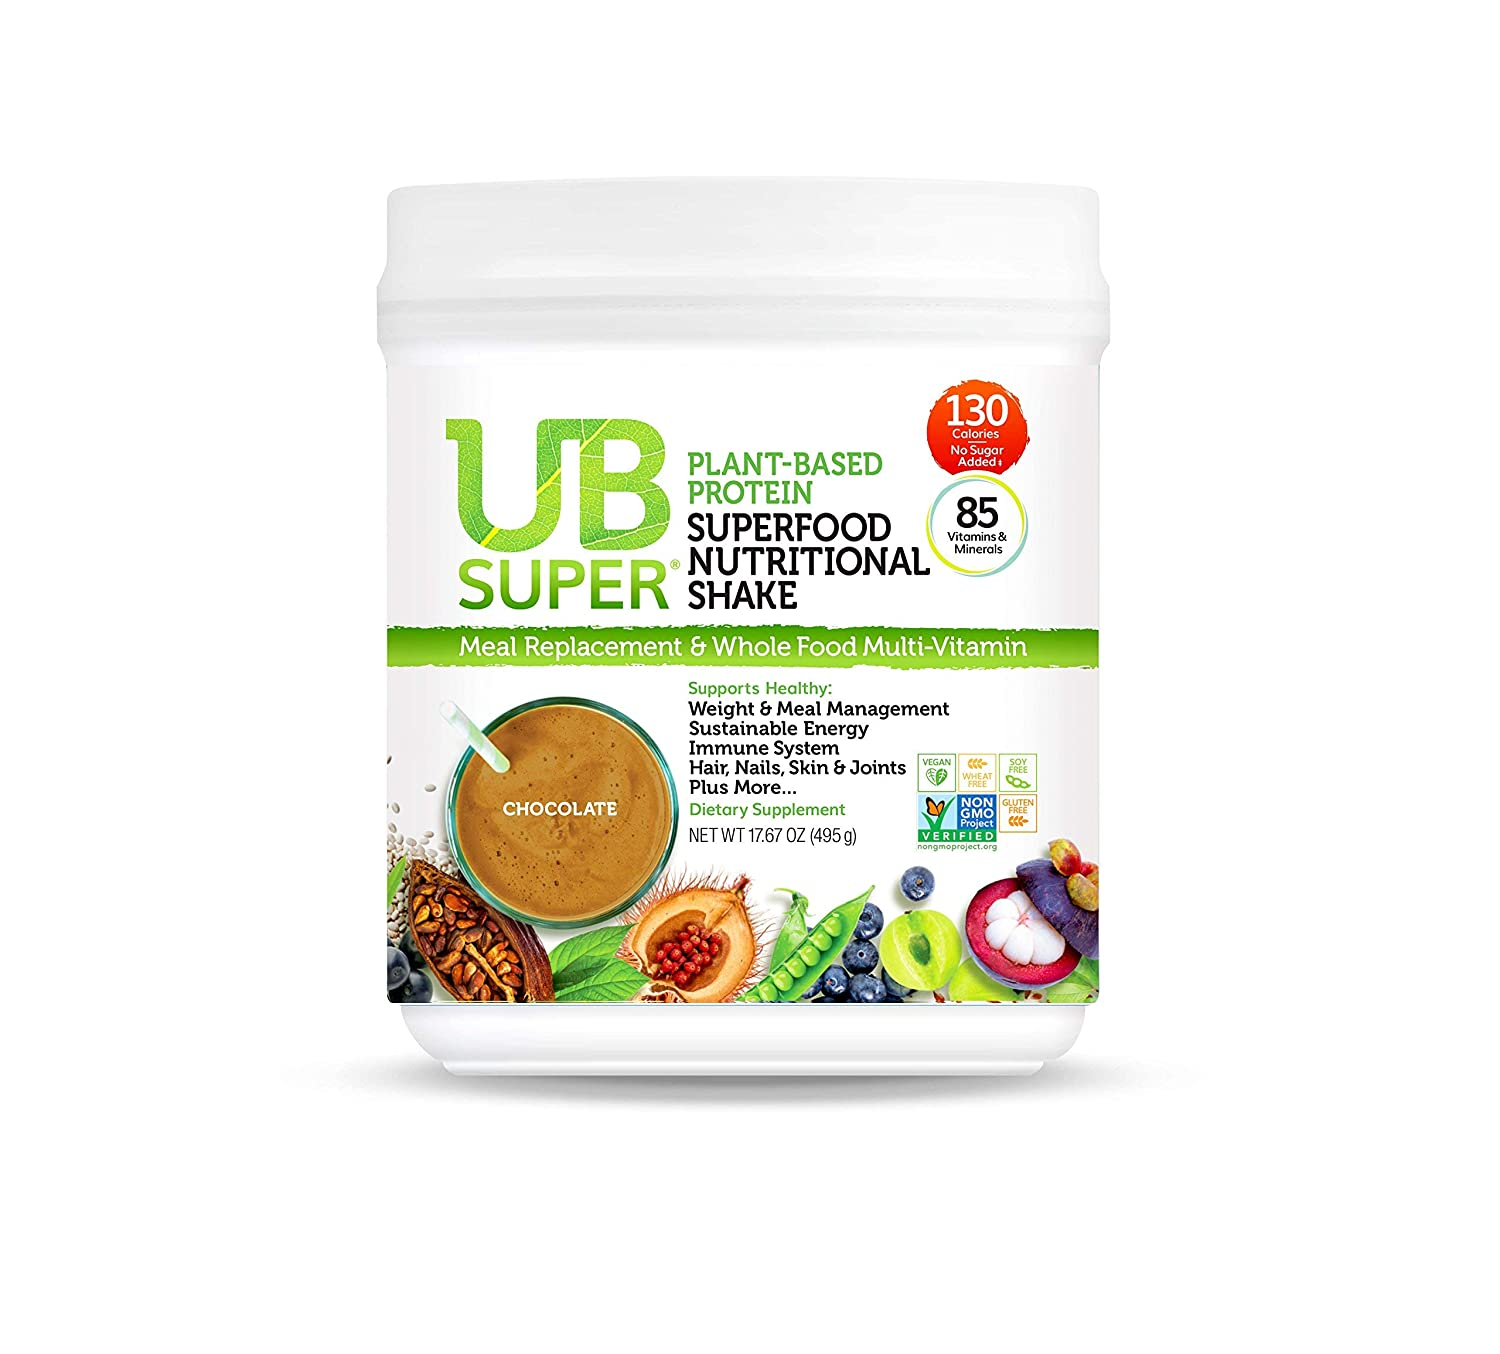 UB Super – Meal Replacement – Protein Superfood Nutritional Shake – Vegan, Gluten Free, Non GMO, No Added Sugar, Nutrient Rich – Dietary Supplement Chocolate, Plant-Based